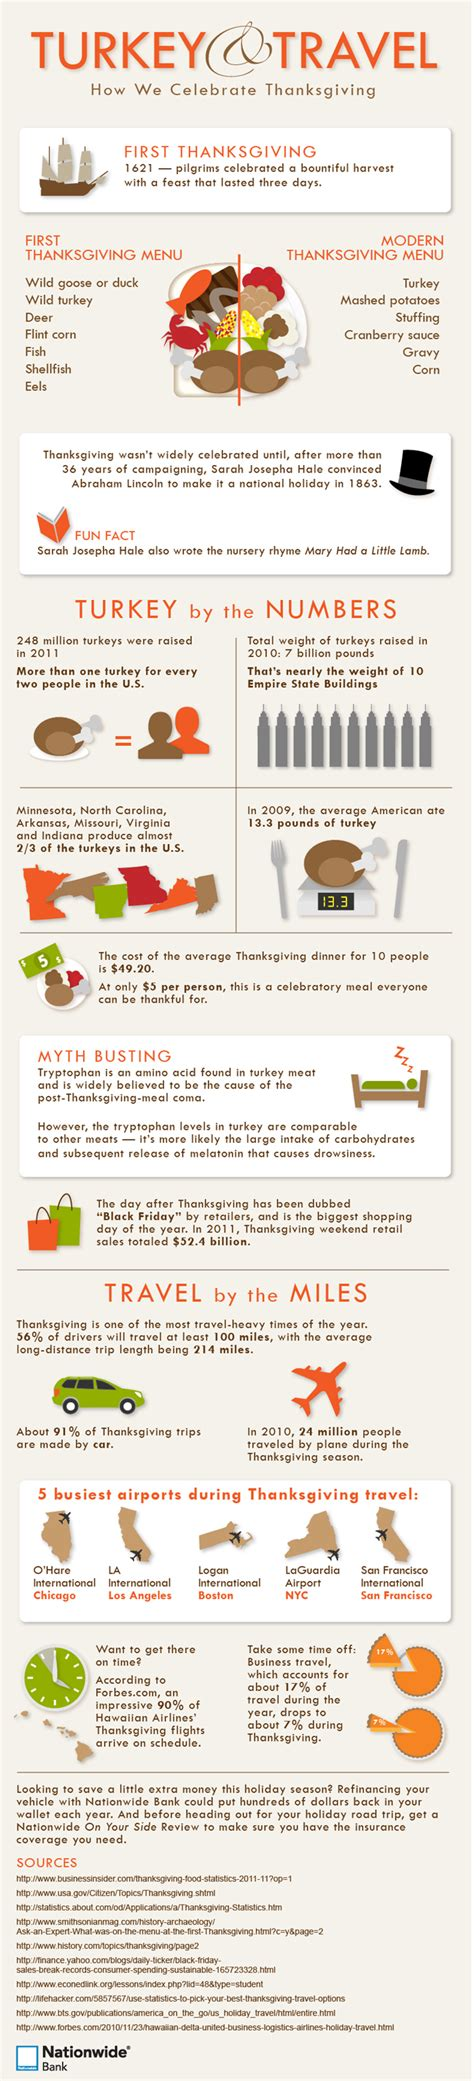 t bank turkey the celebration of thanksgiving facts and statistics